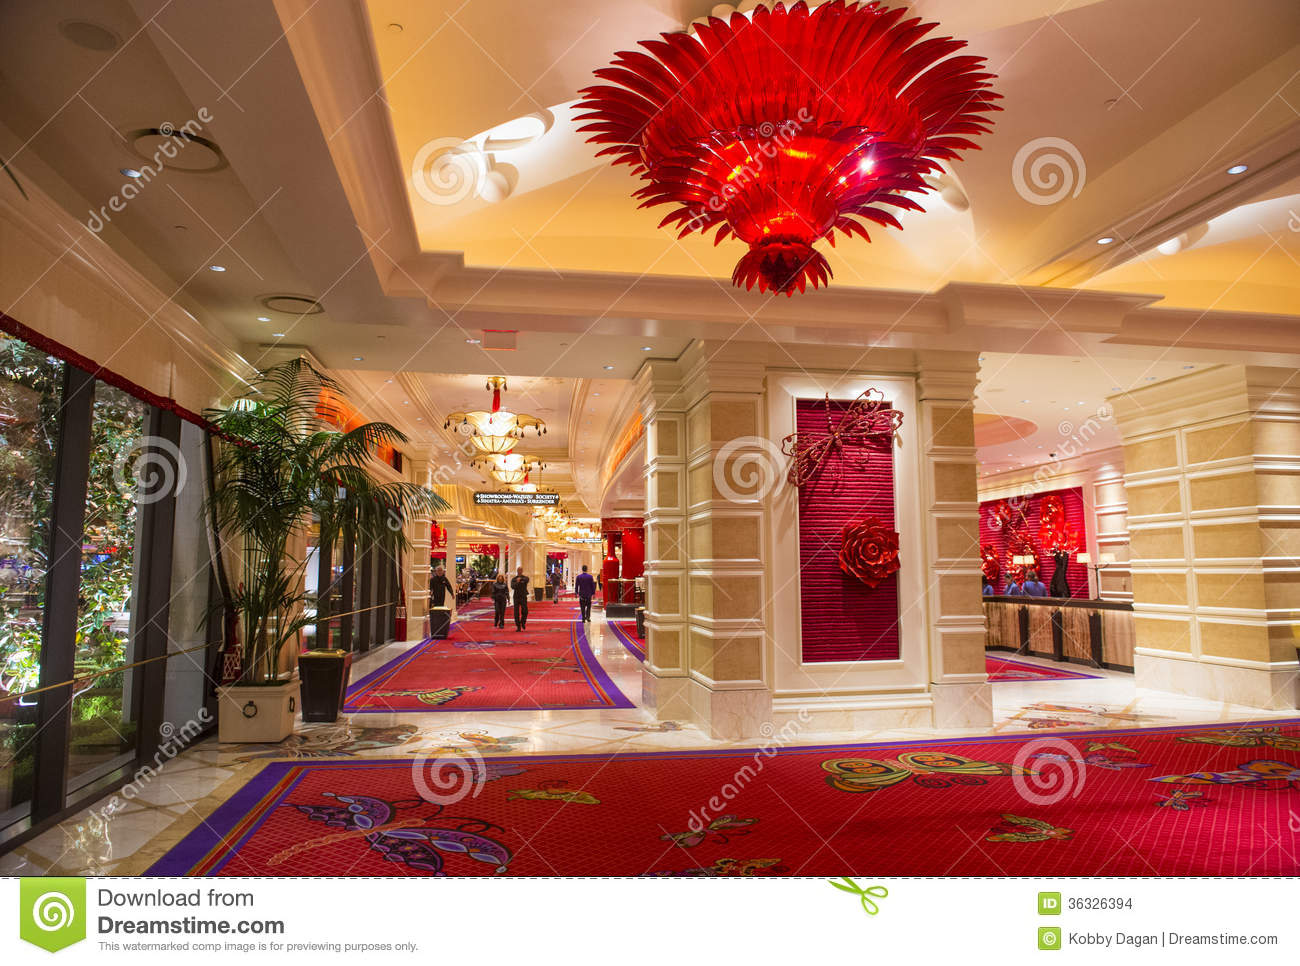 Las Vegas Wynn hotel editorial stock image. Image of gamble - 36326394